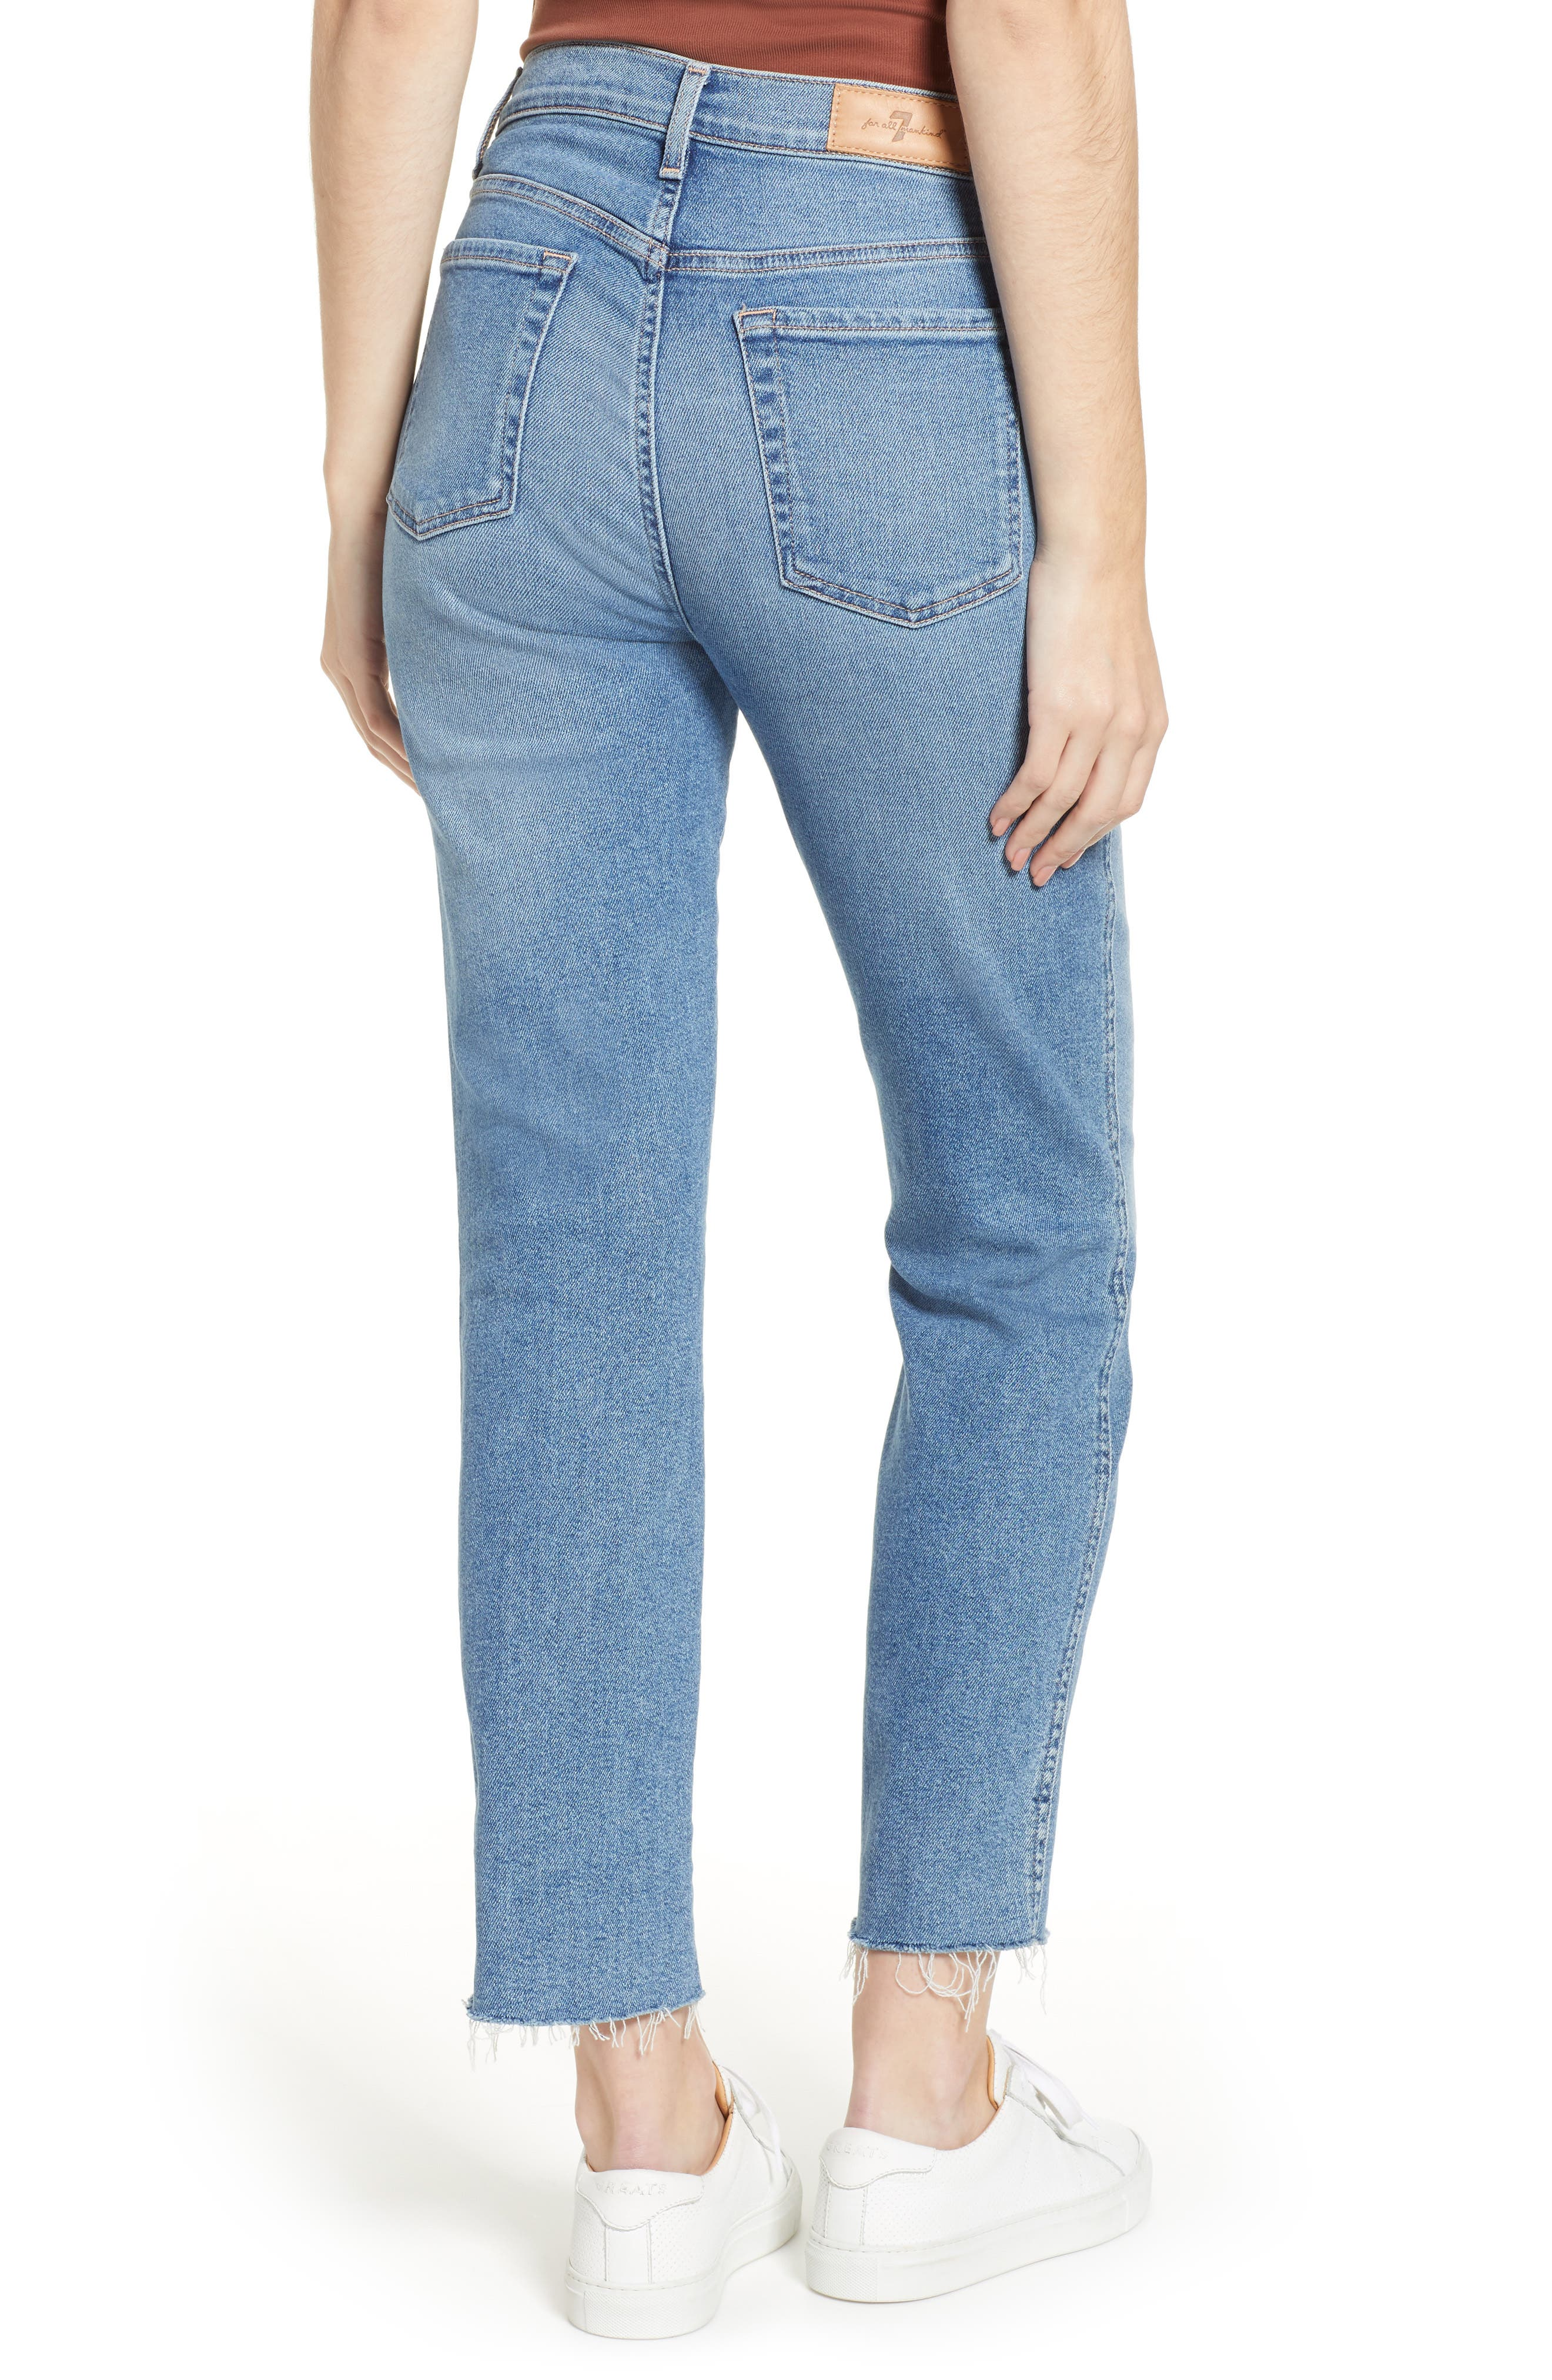 7 FOR ALL MANKIND<SUP>®</SUP>, Edie High Waist Crop Jeans, Alternate thumbnail 2, color, LUXE VINTAGE FLORA